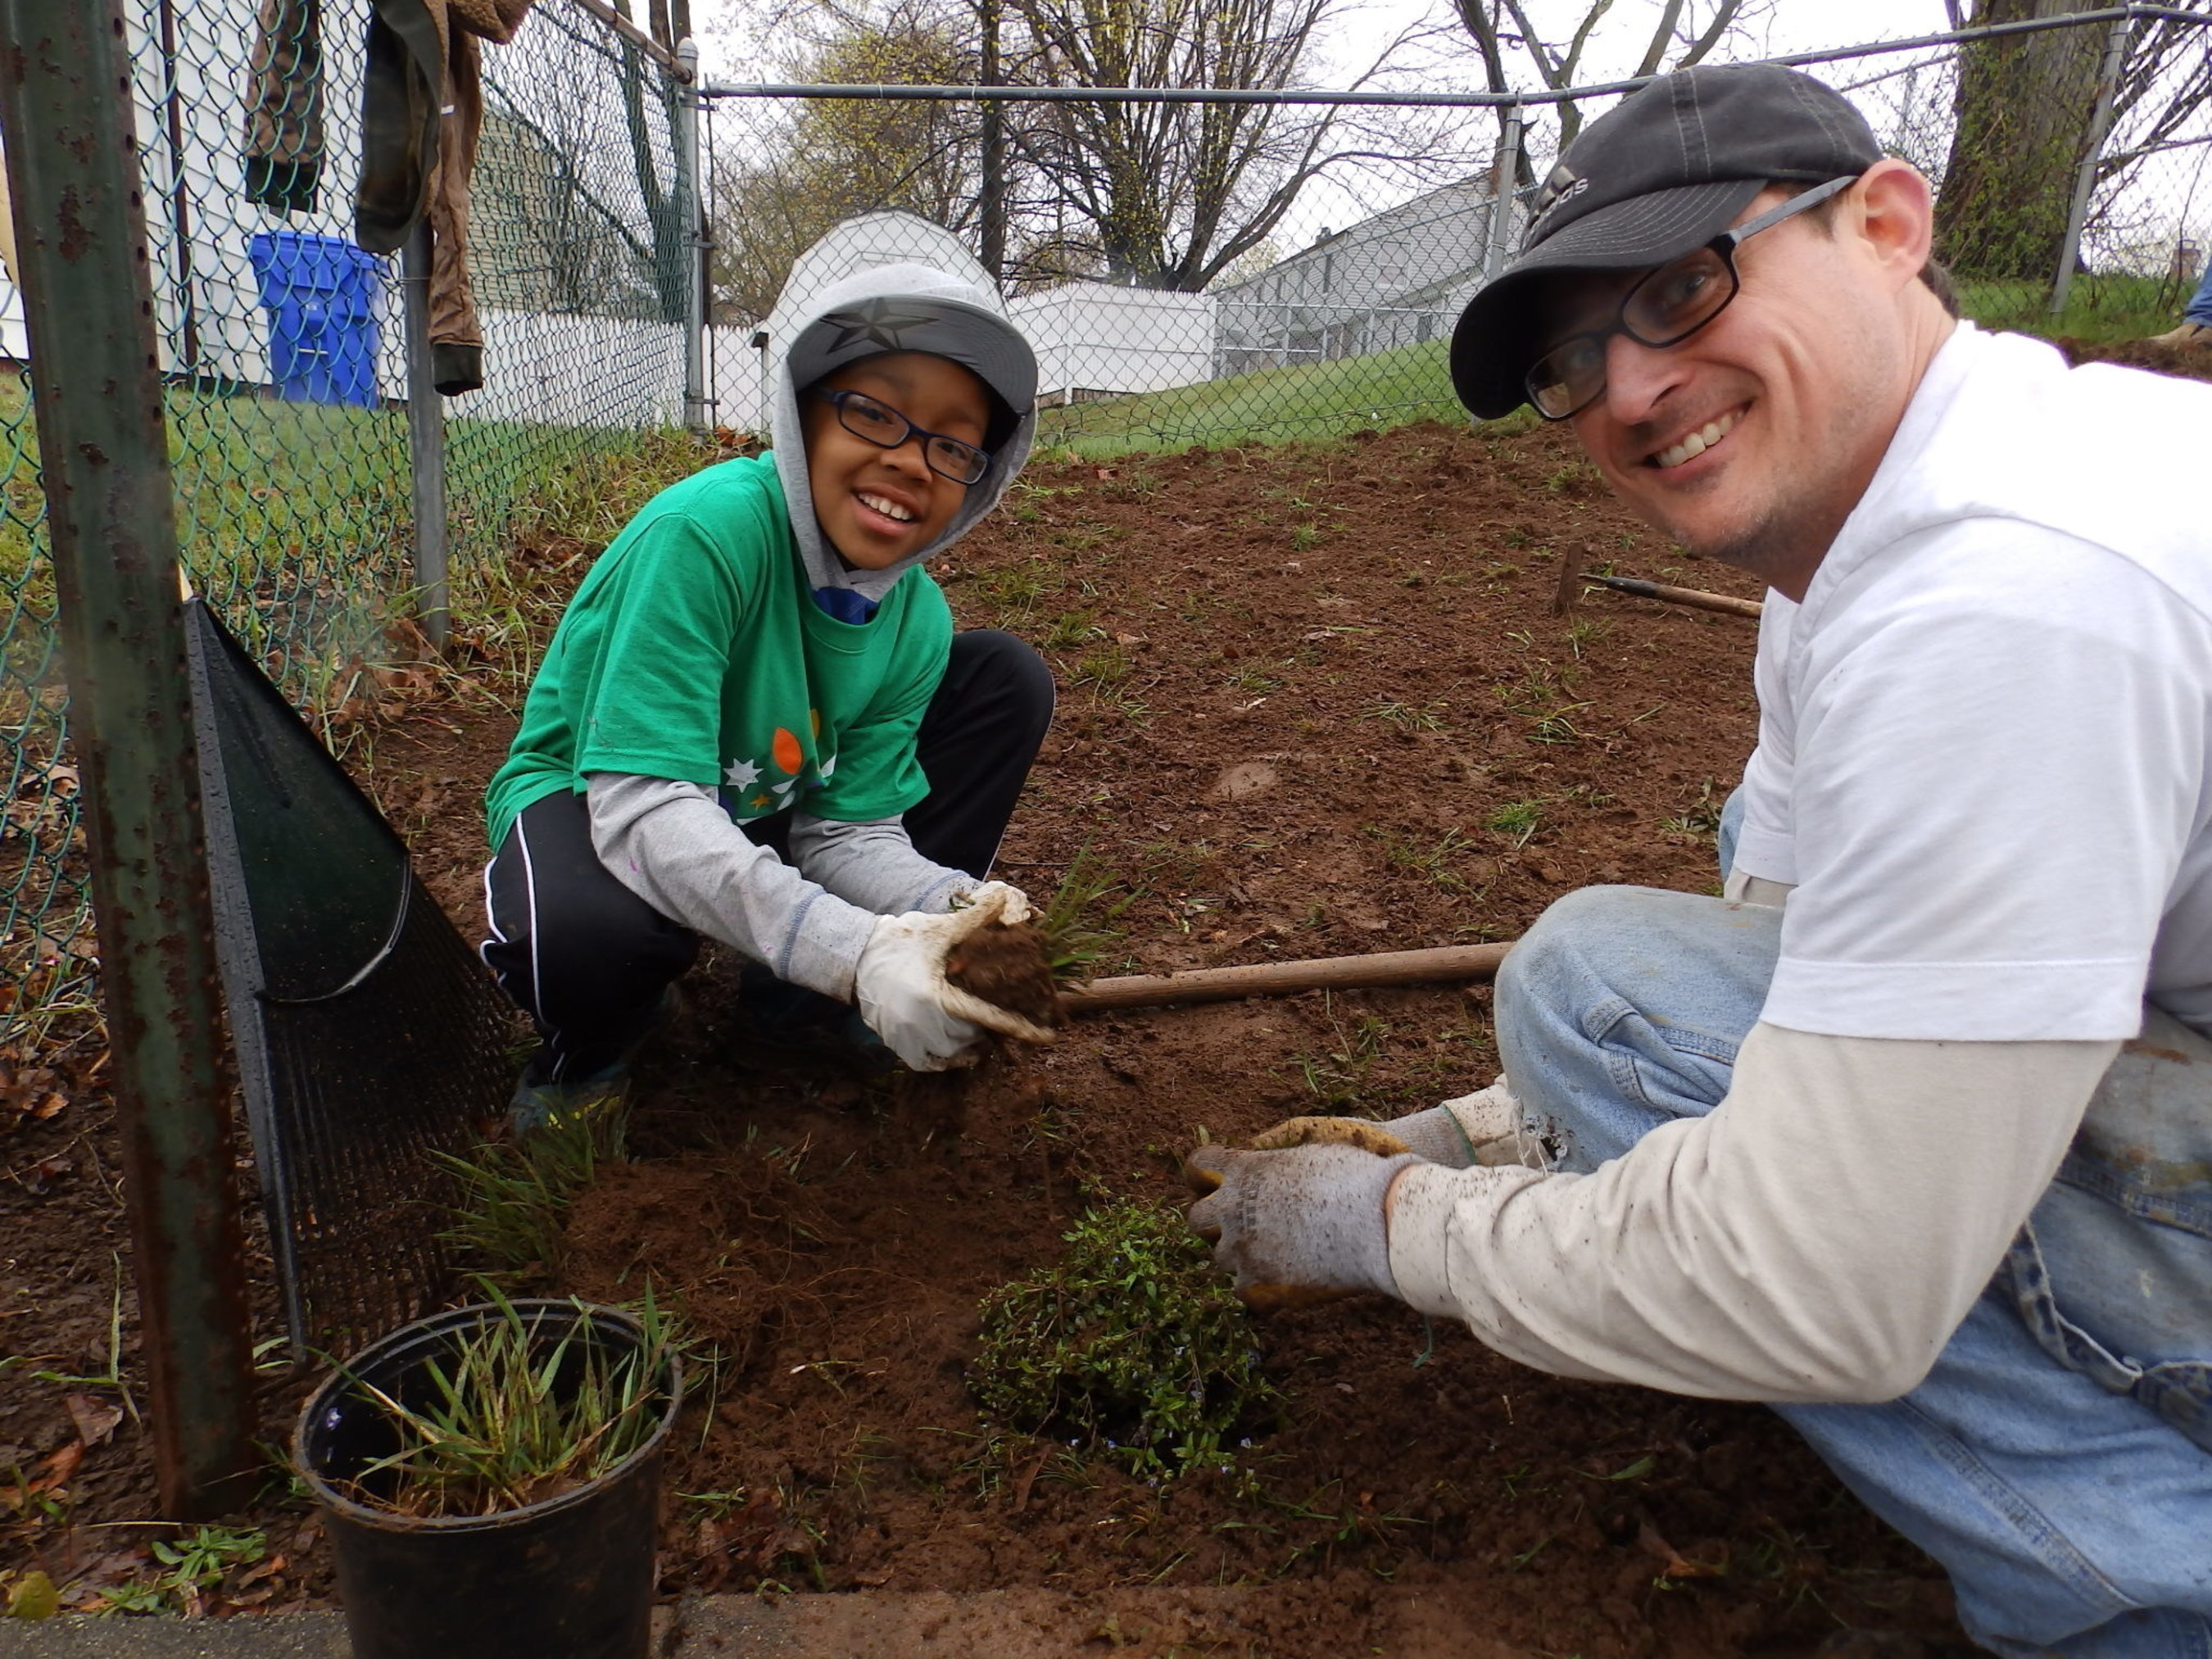 Comcast Volunteers 'Make Change Happen,' Beautifying Nine Sites Across Connecticut On 14th Comcast Cares Day